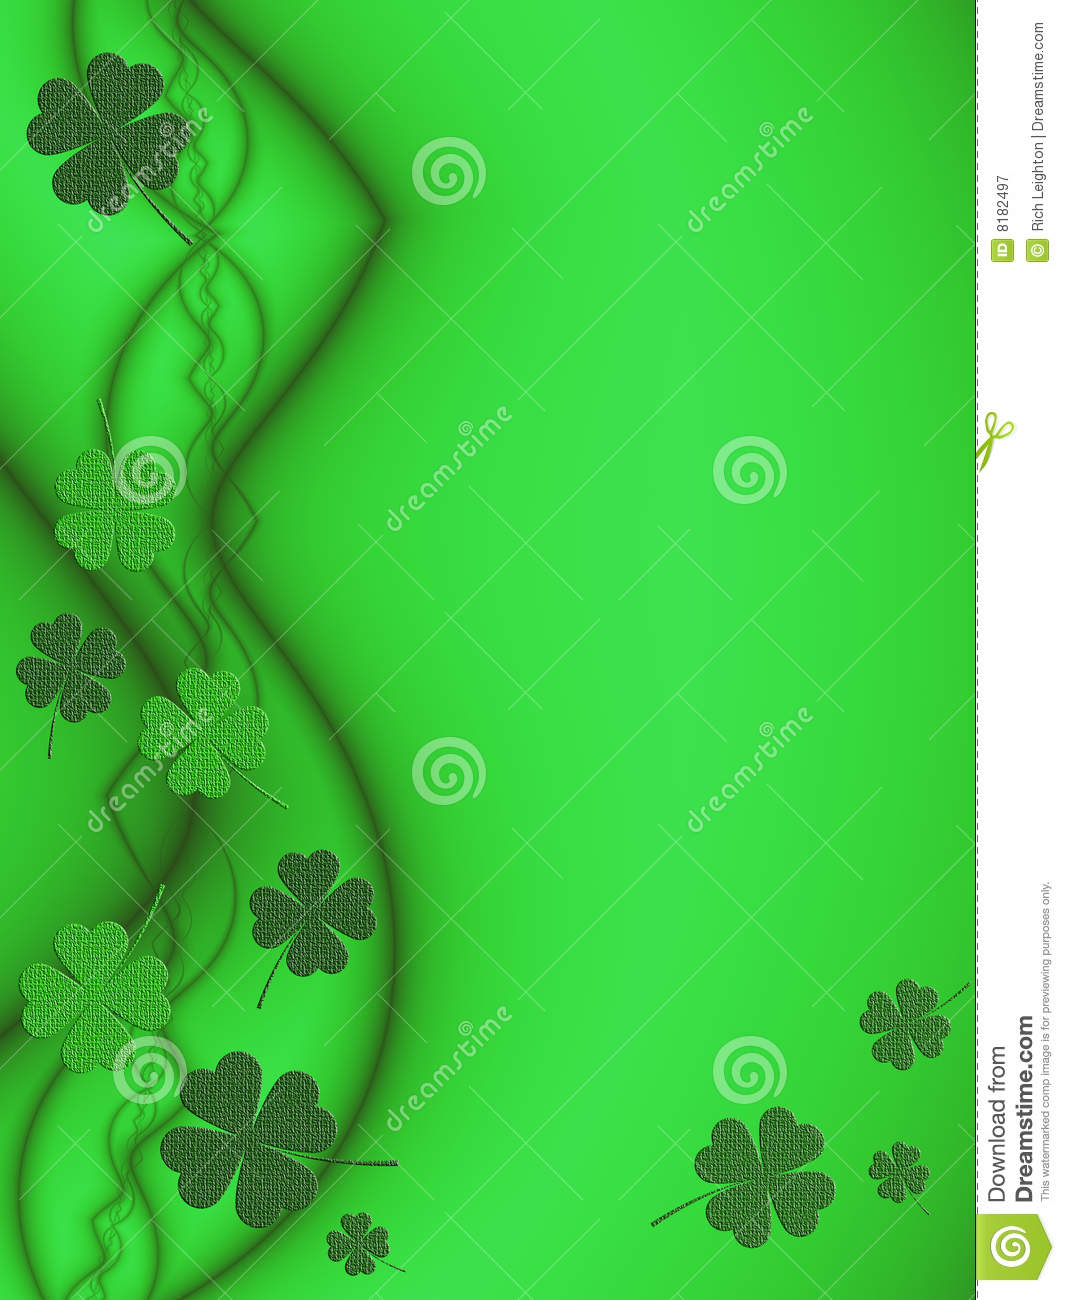 abstract st patrick theme - photo #18